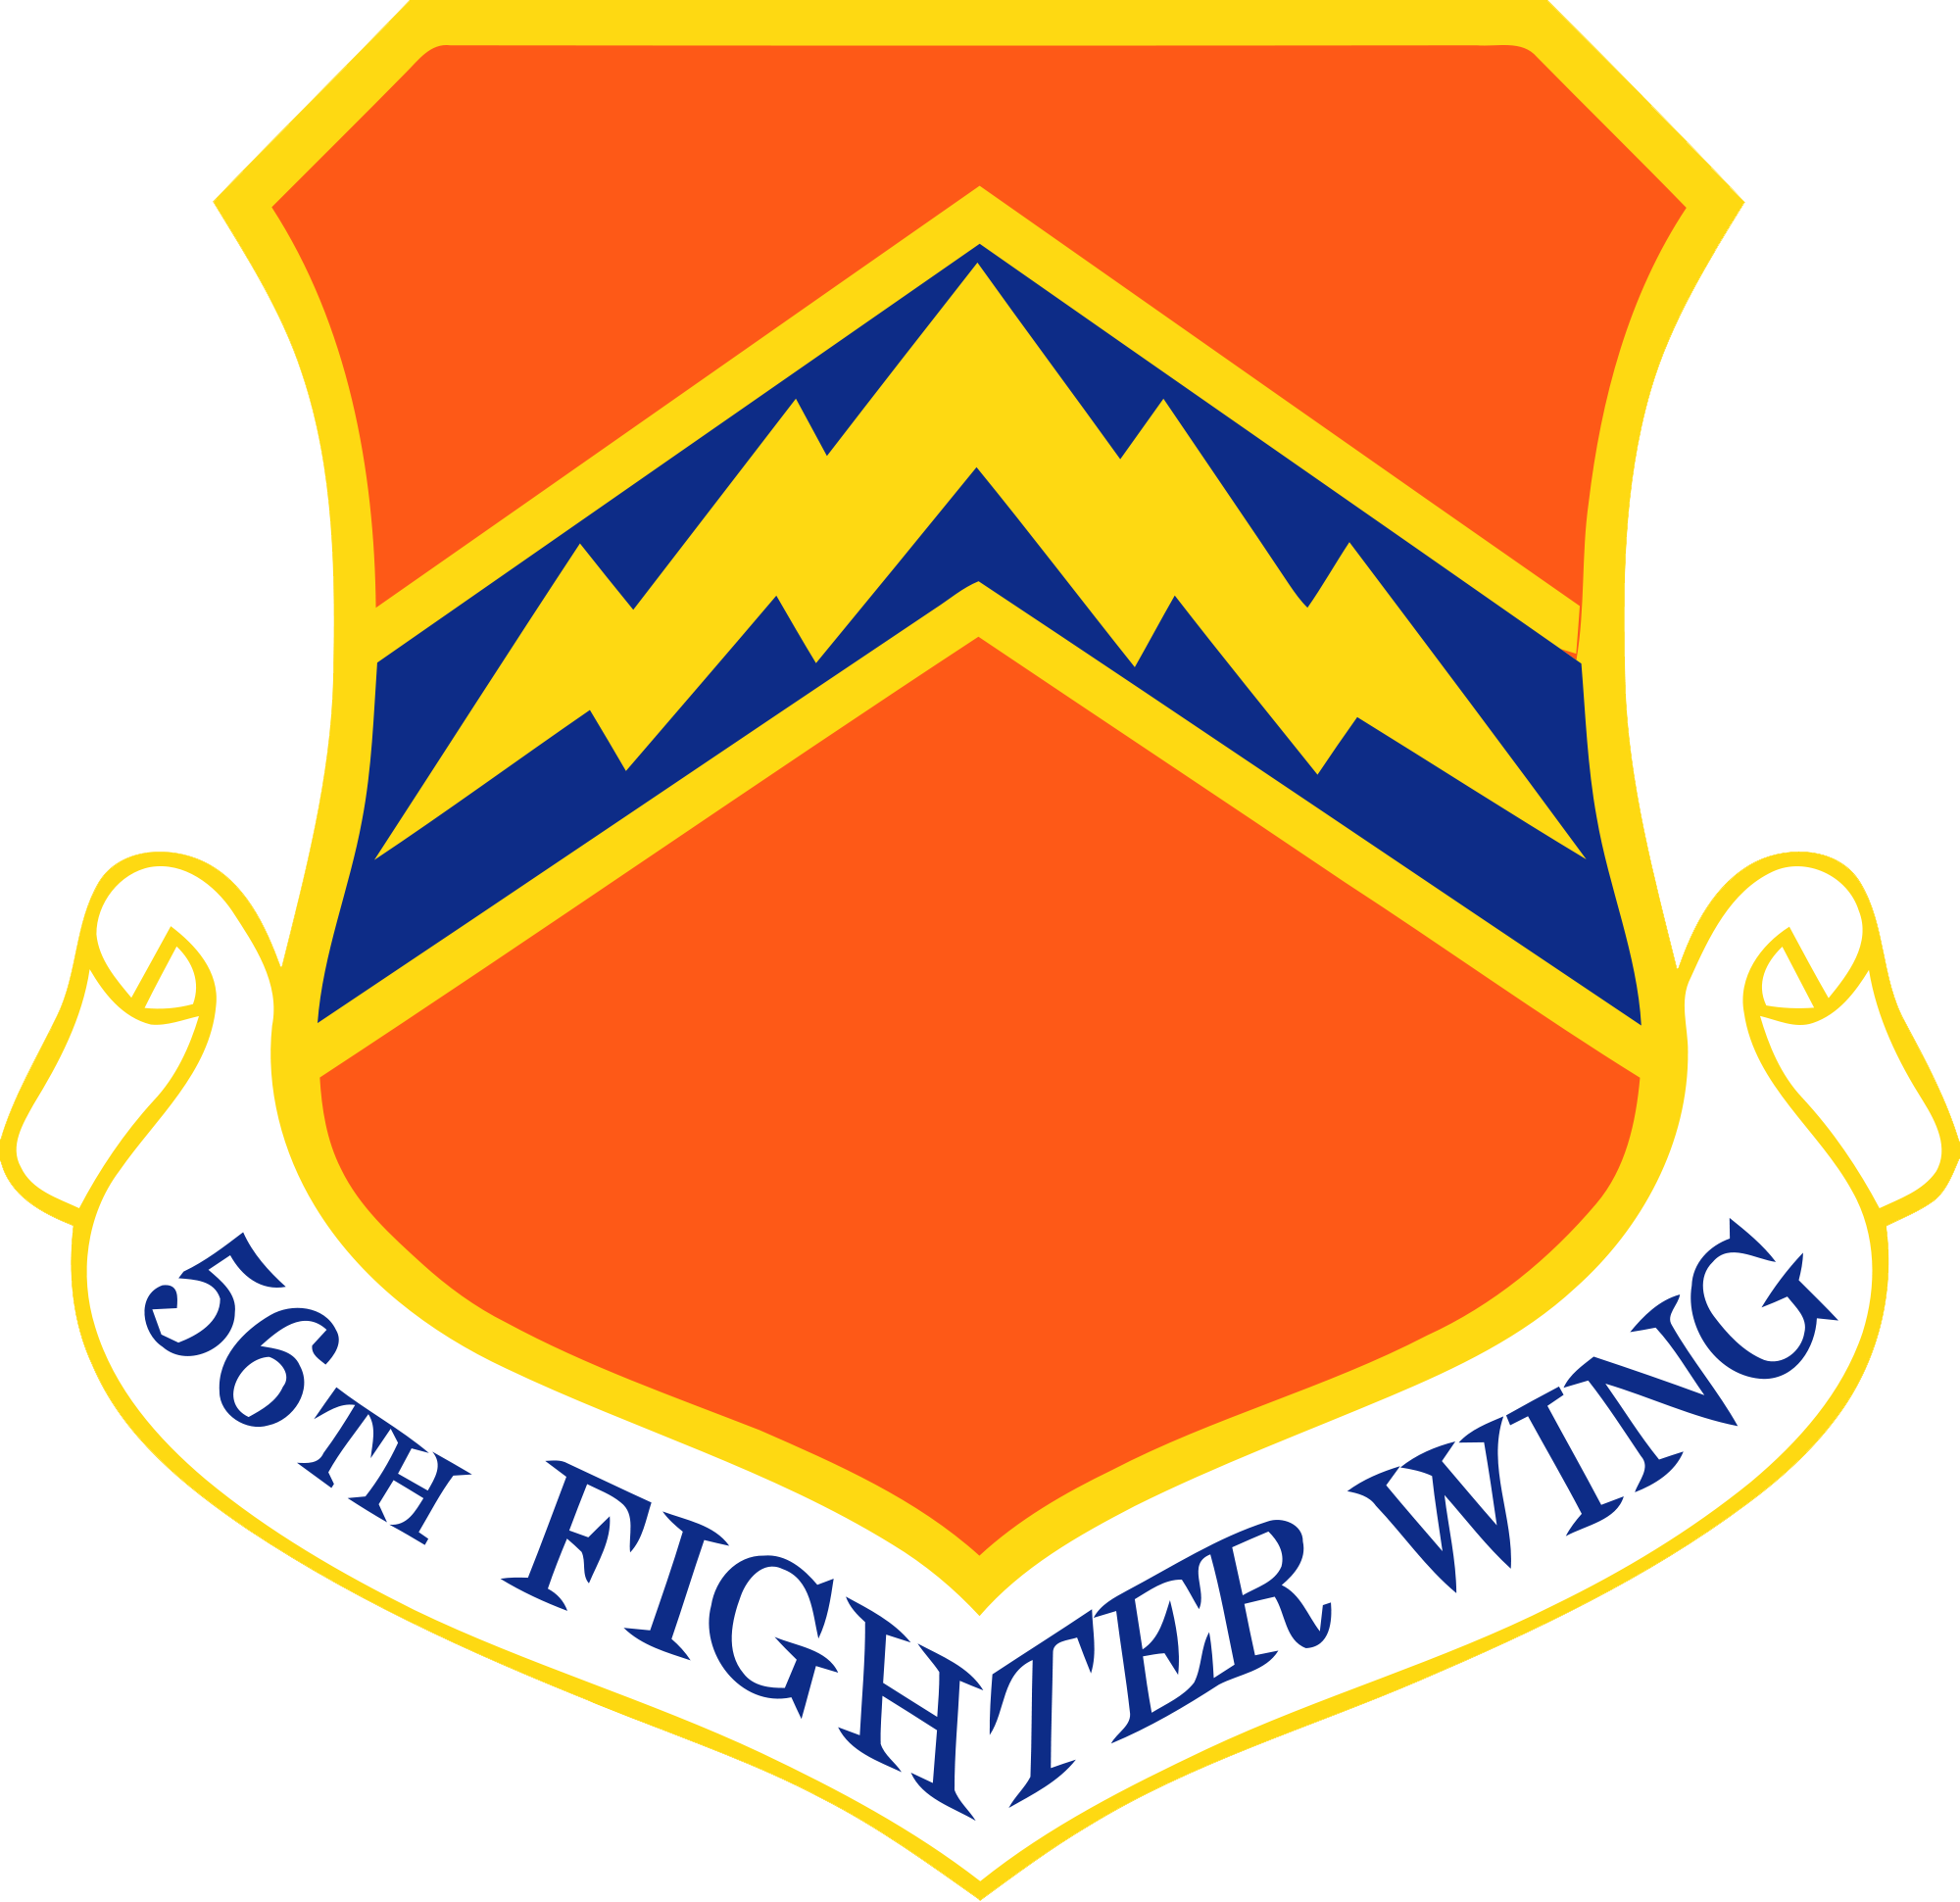 USAF_-_56th_Fighter_Wing.png